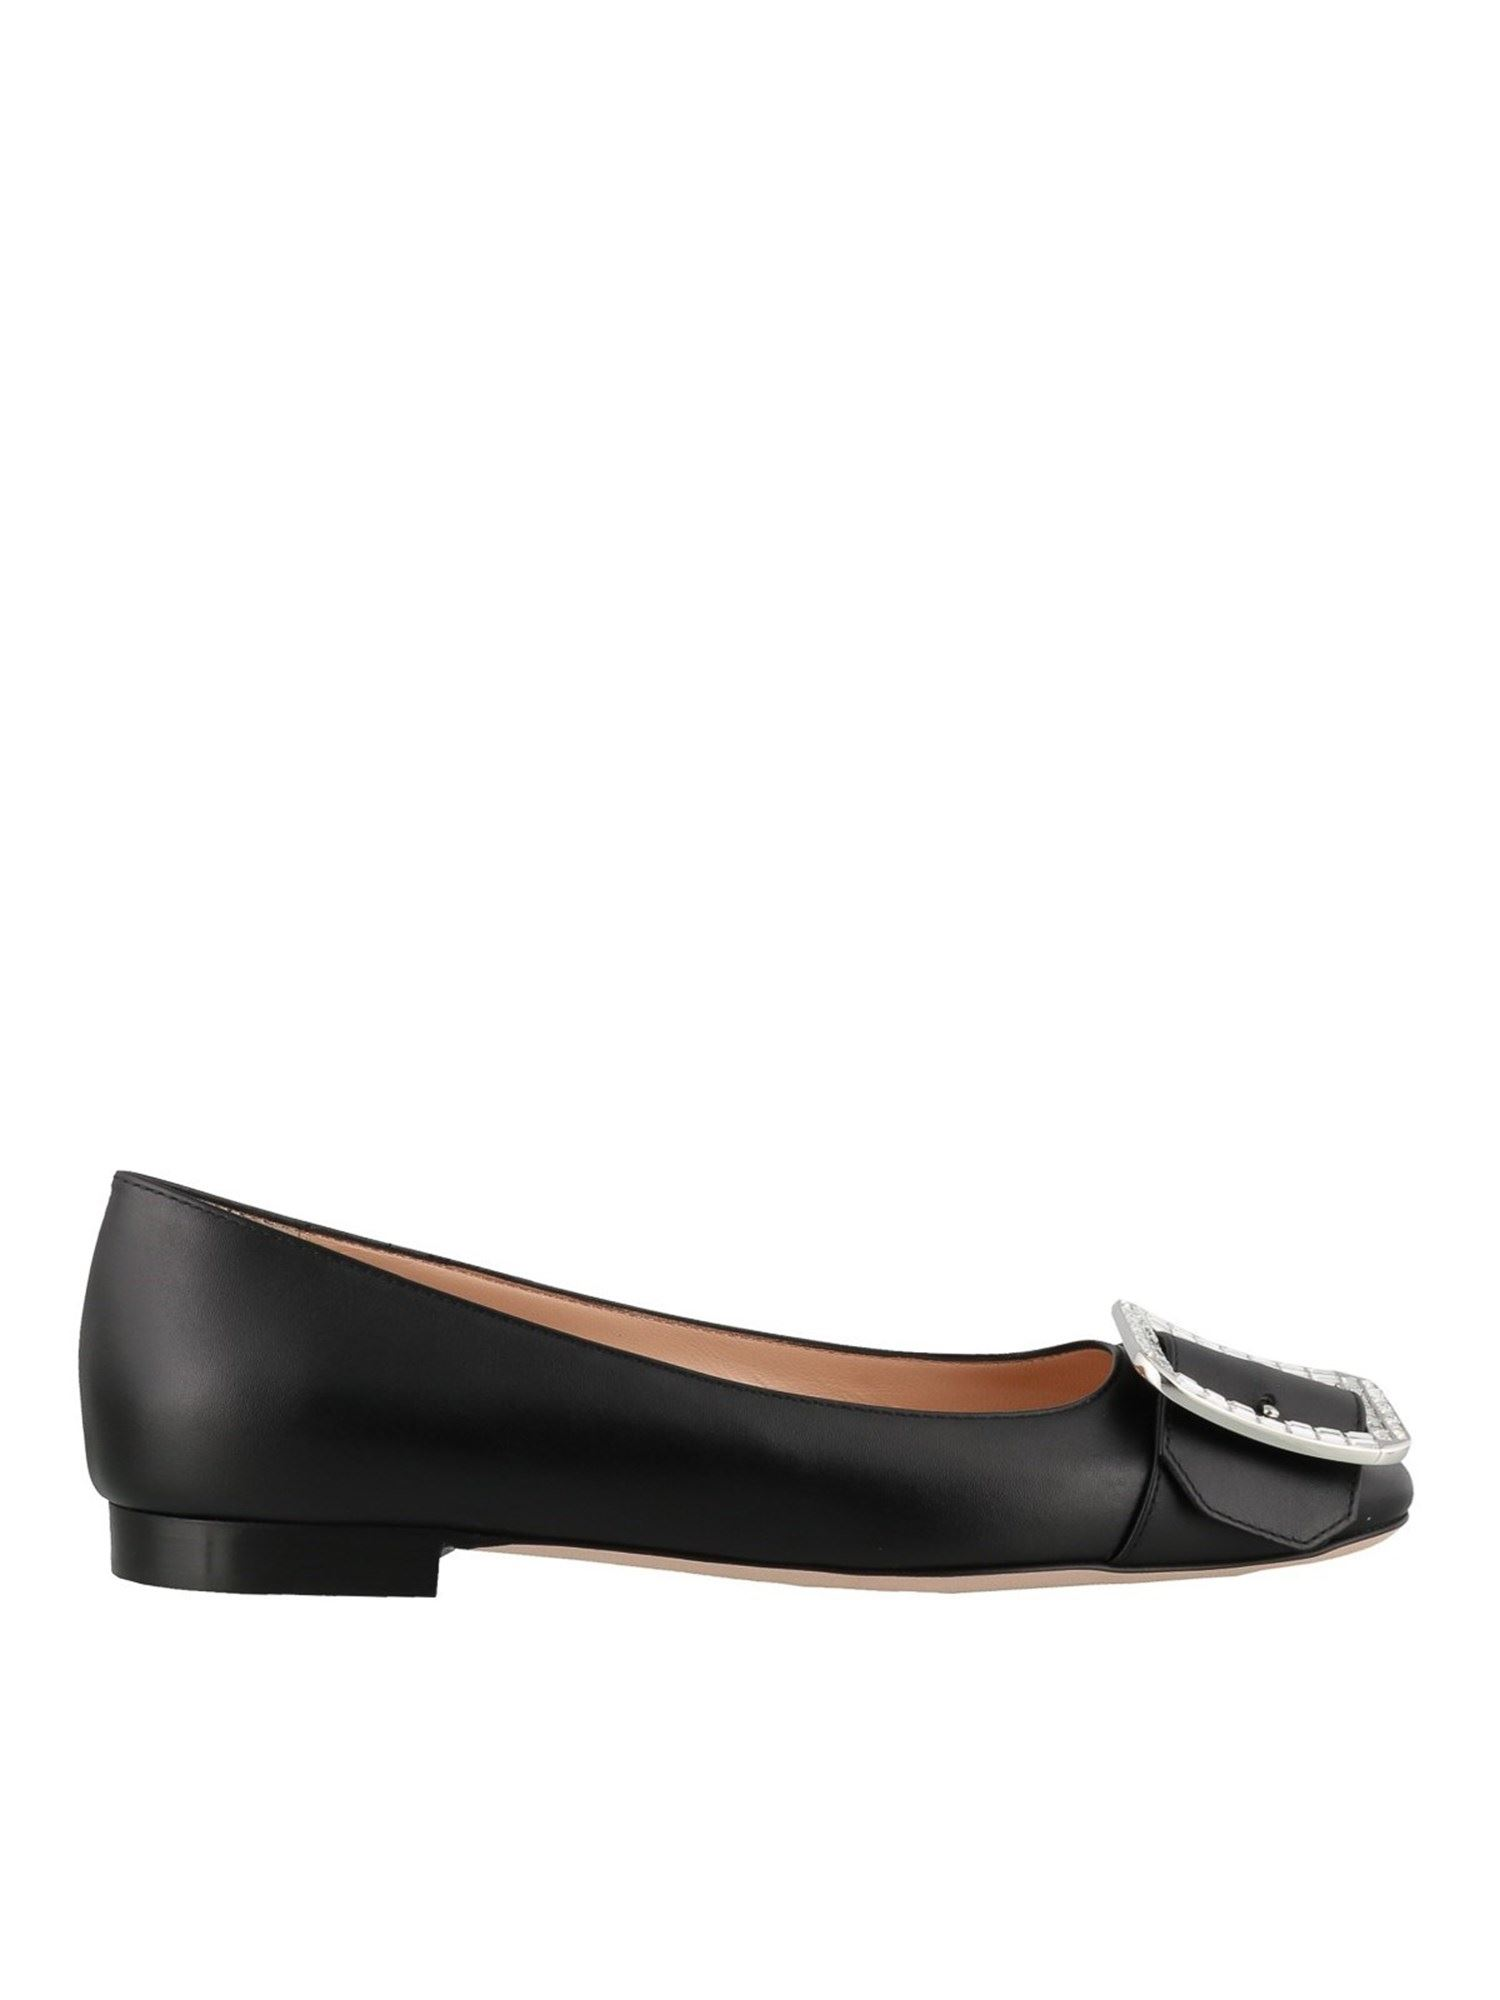 Bally BLACK JACKIE BALLET FLATS WITH CRYSTAL BUCKLE